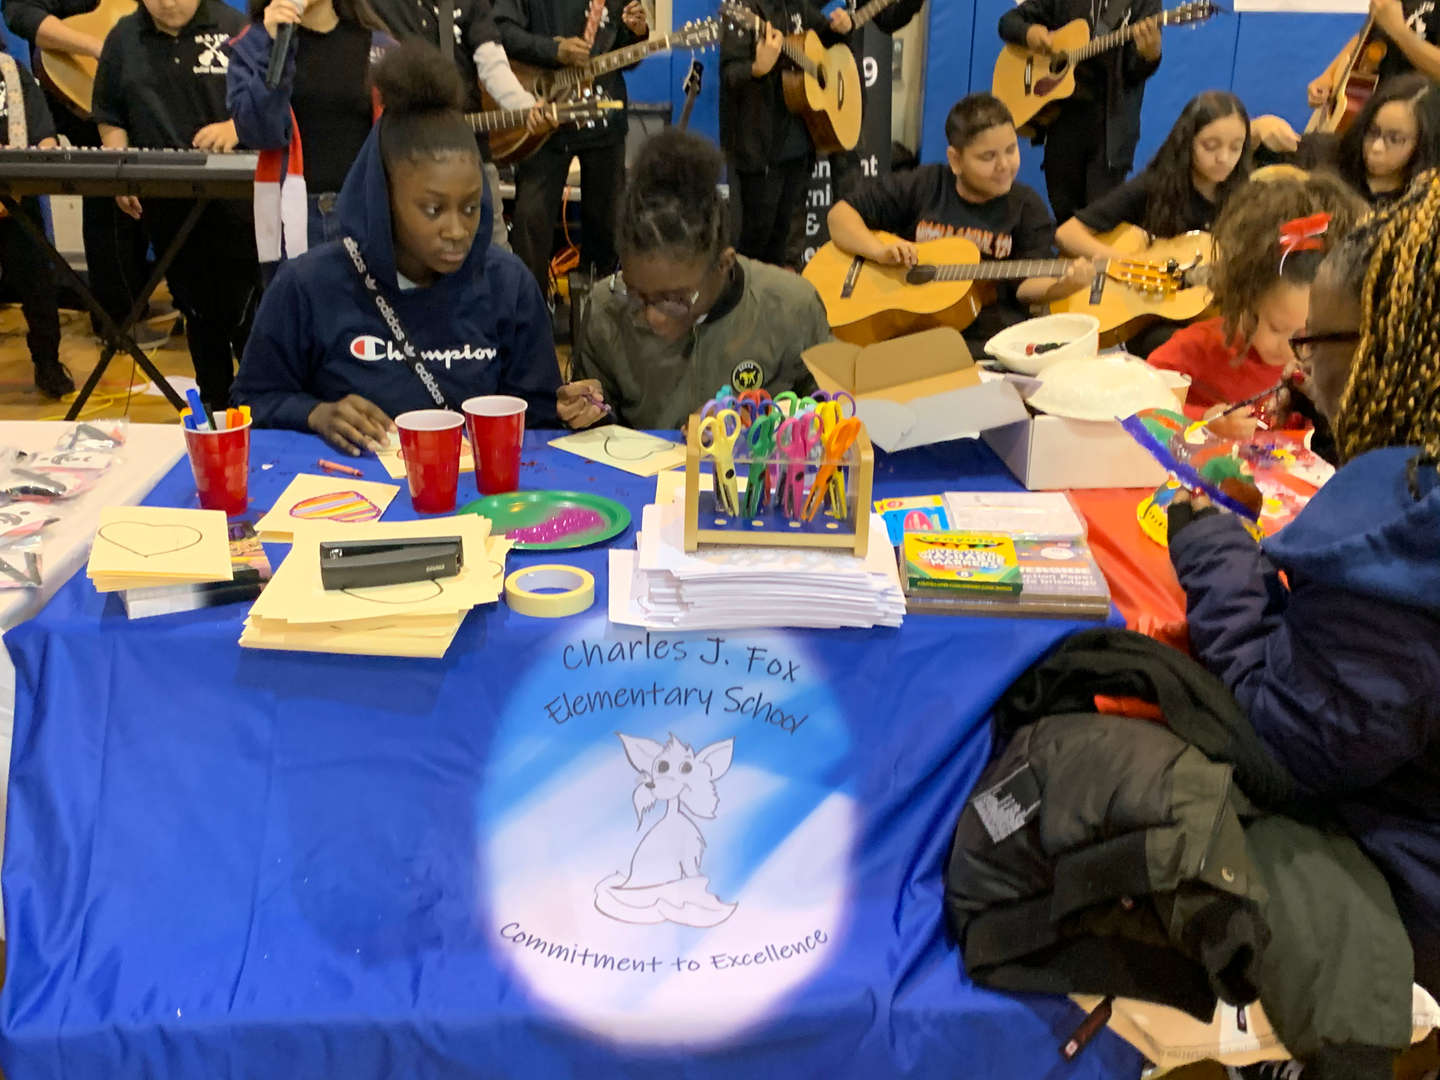 Students doing crafts at the Charles J. Fox Elementary School table